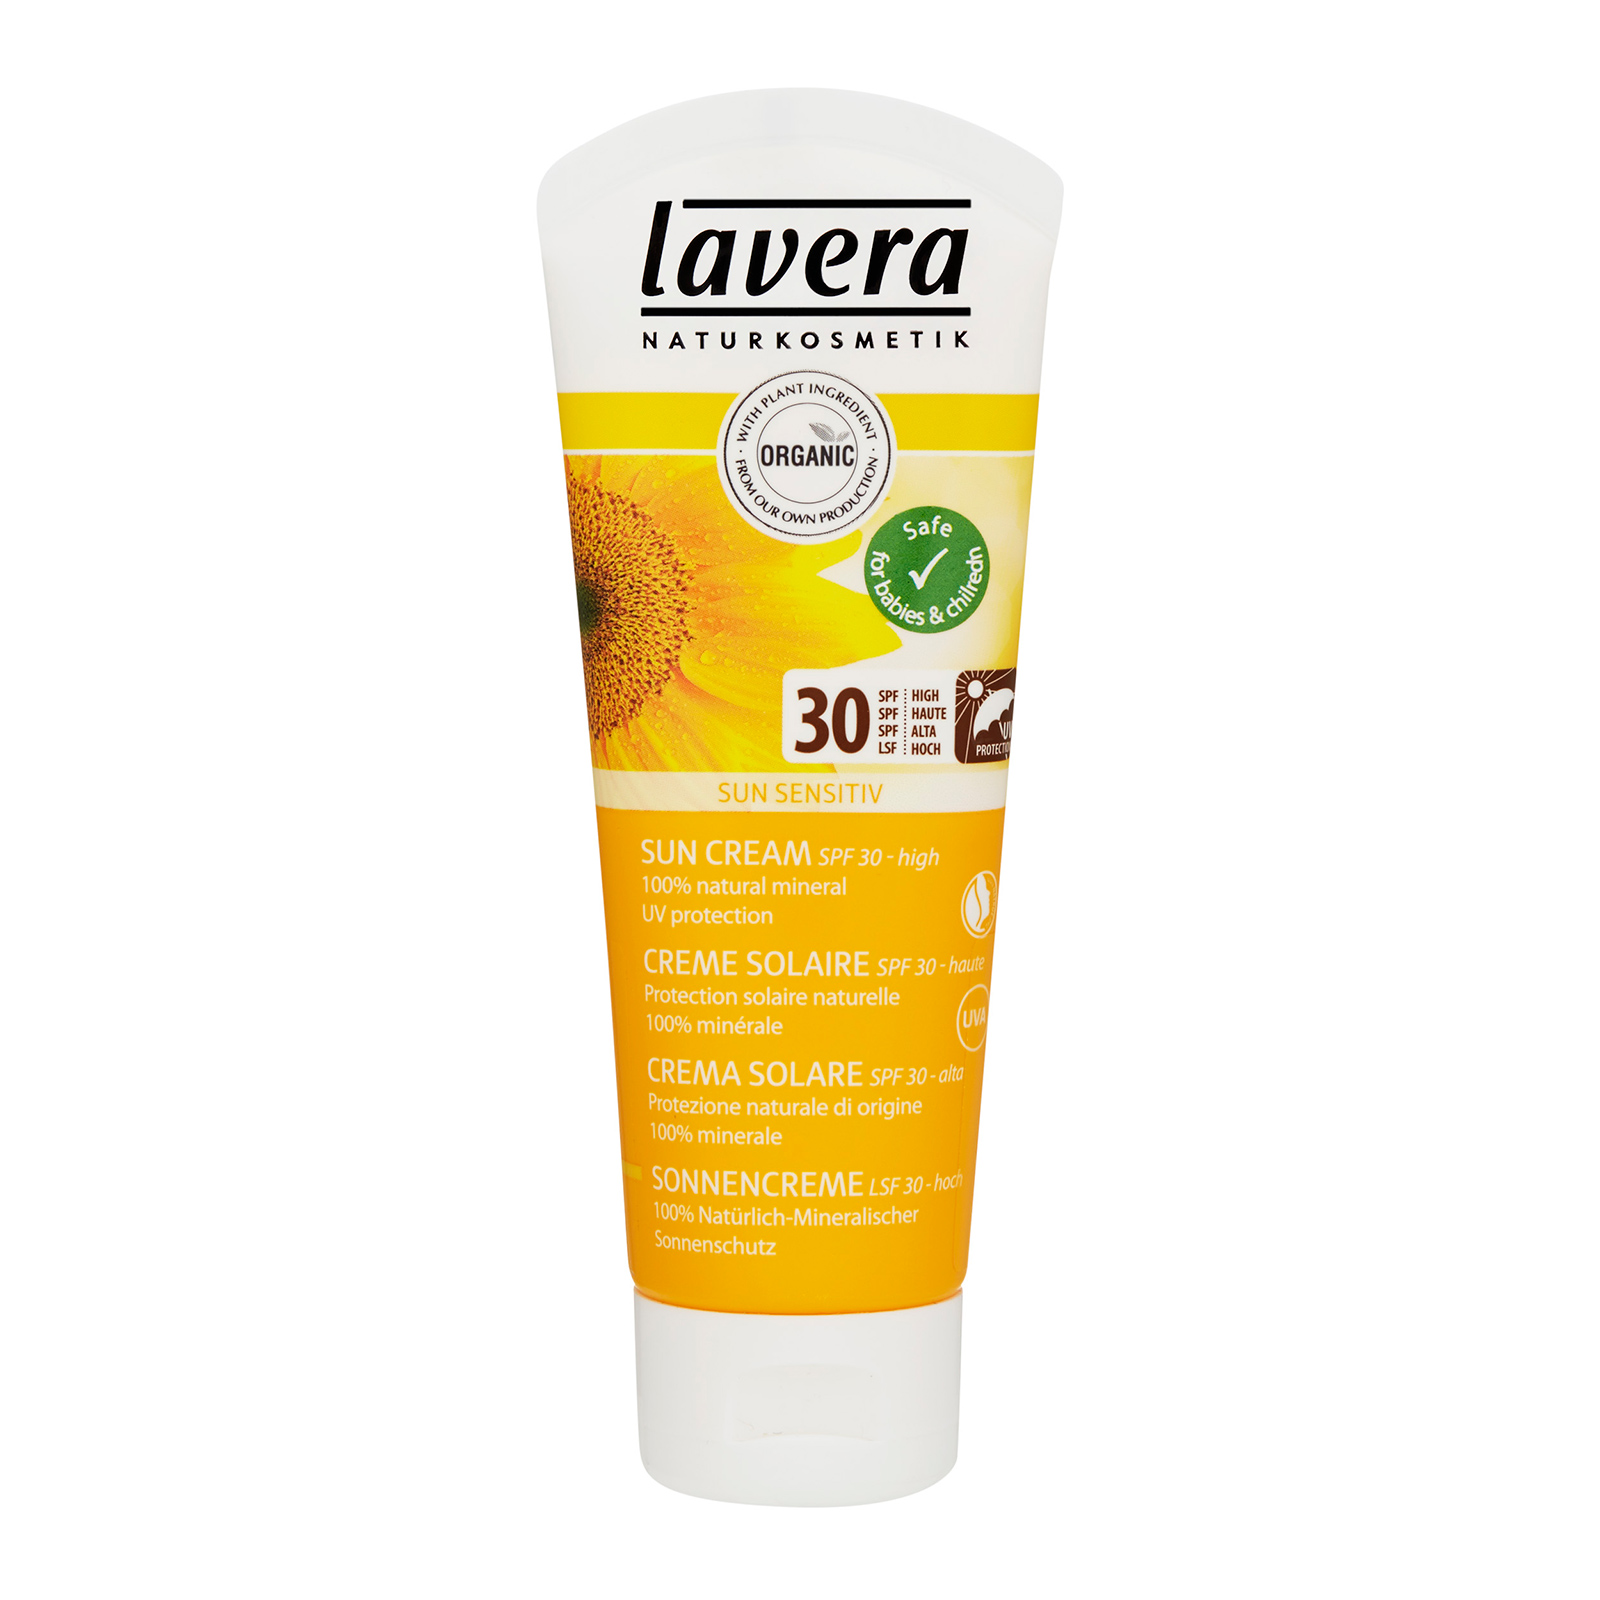 Lavera  Sun Cream SPF 30 2.5oz, 75ml